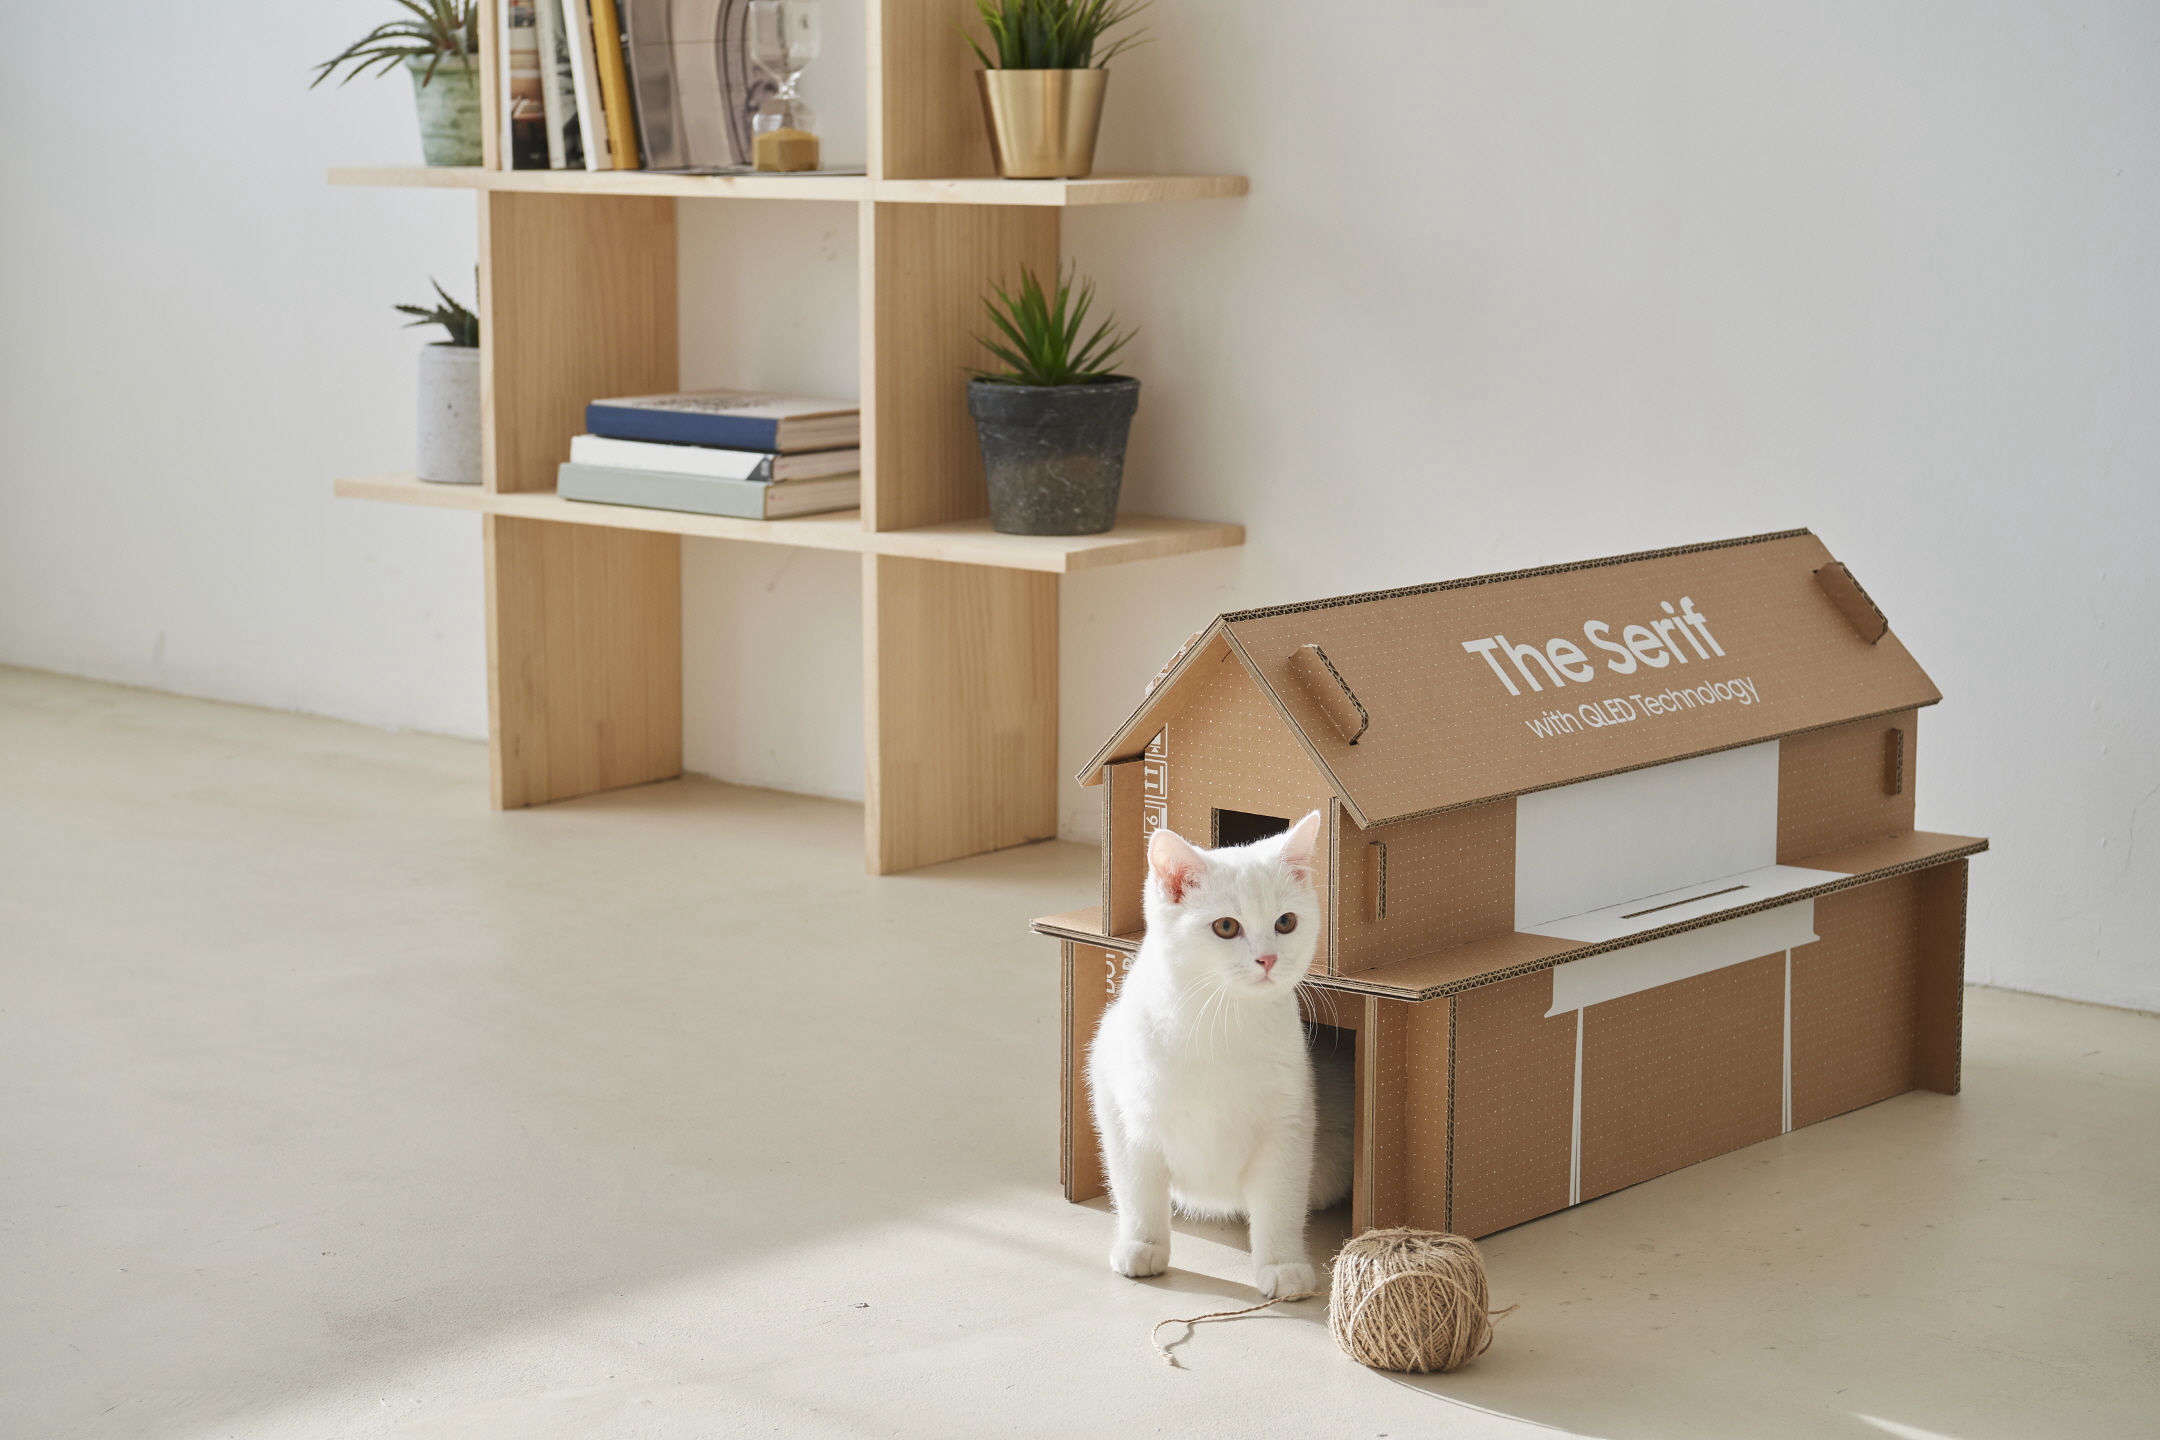 DIY cardboard furniture and accessories: shelves, a cat house, and more from Samsung's cardboard television boxes